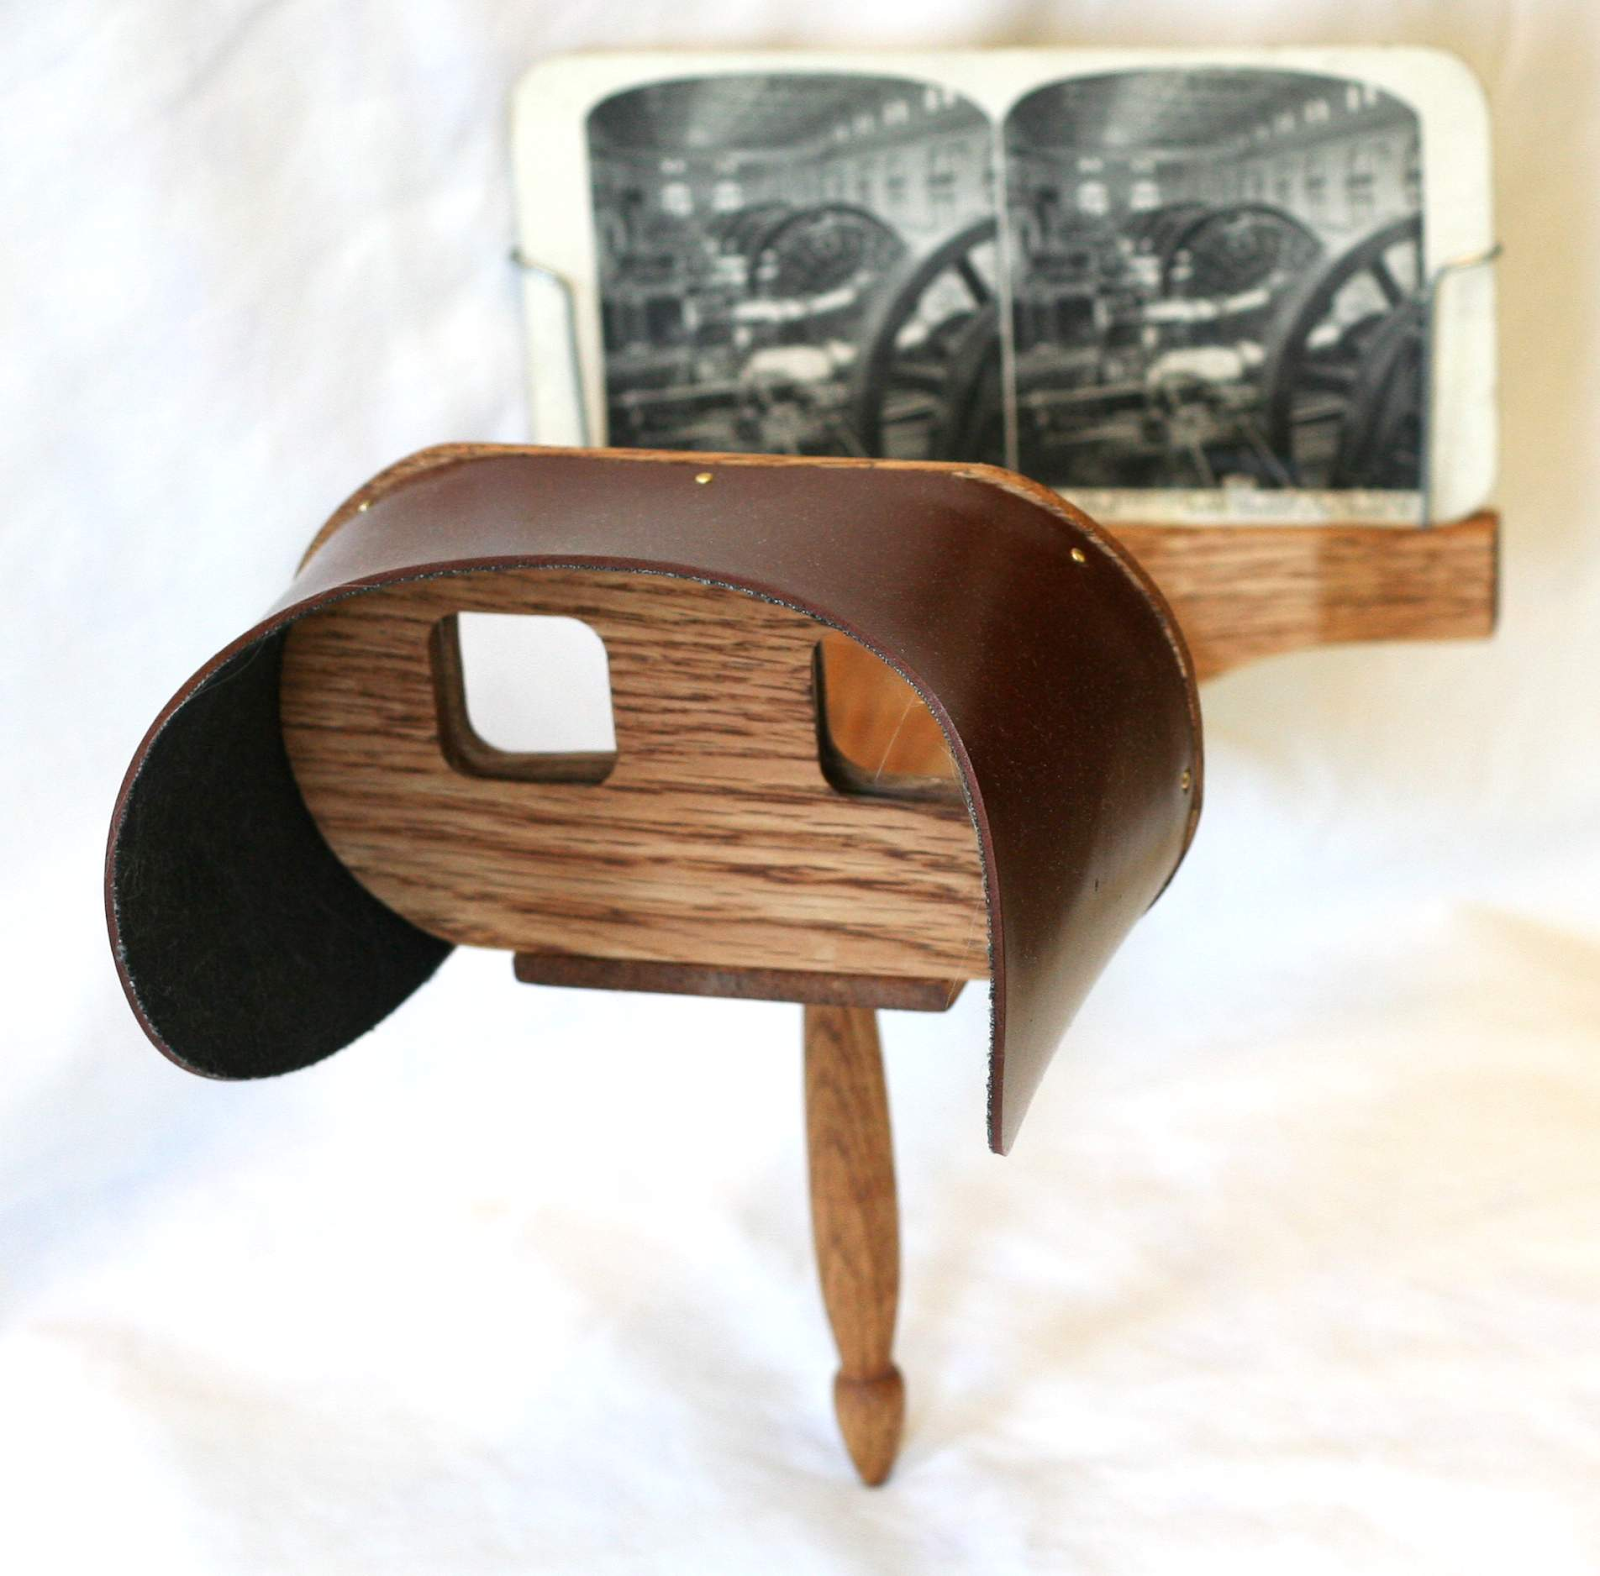 A stereoscope by Oliver Wendell Holmes